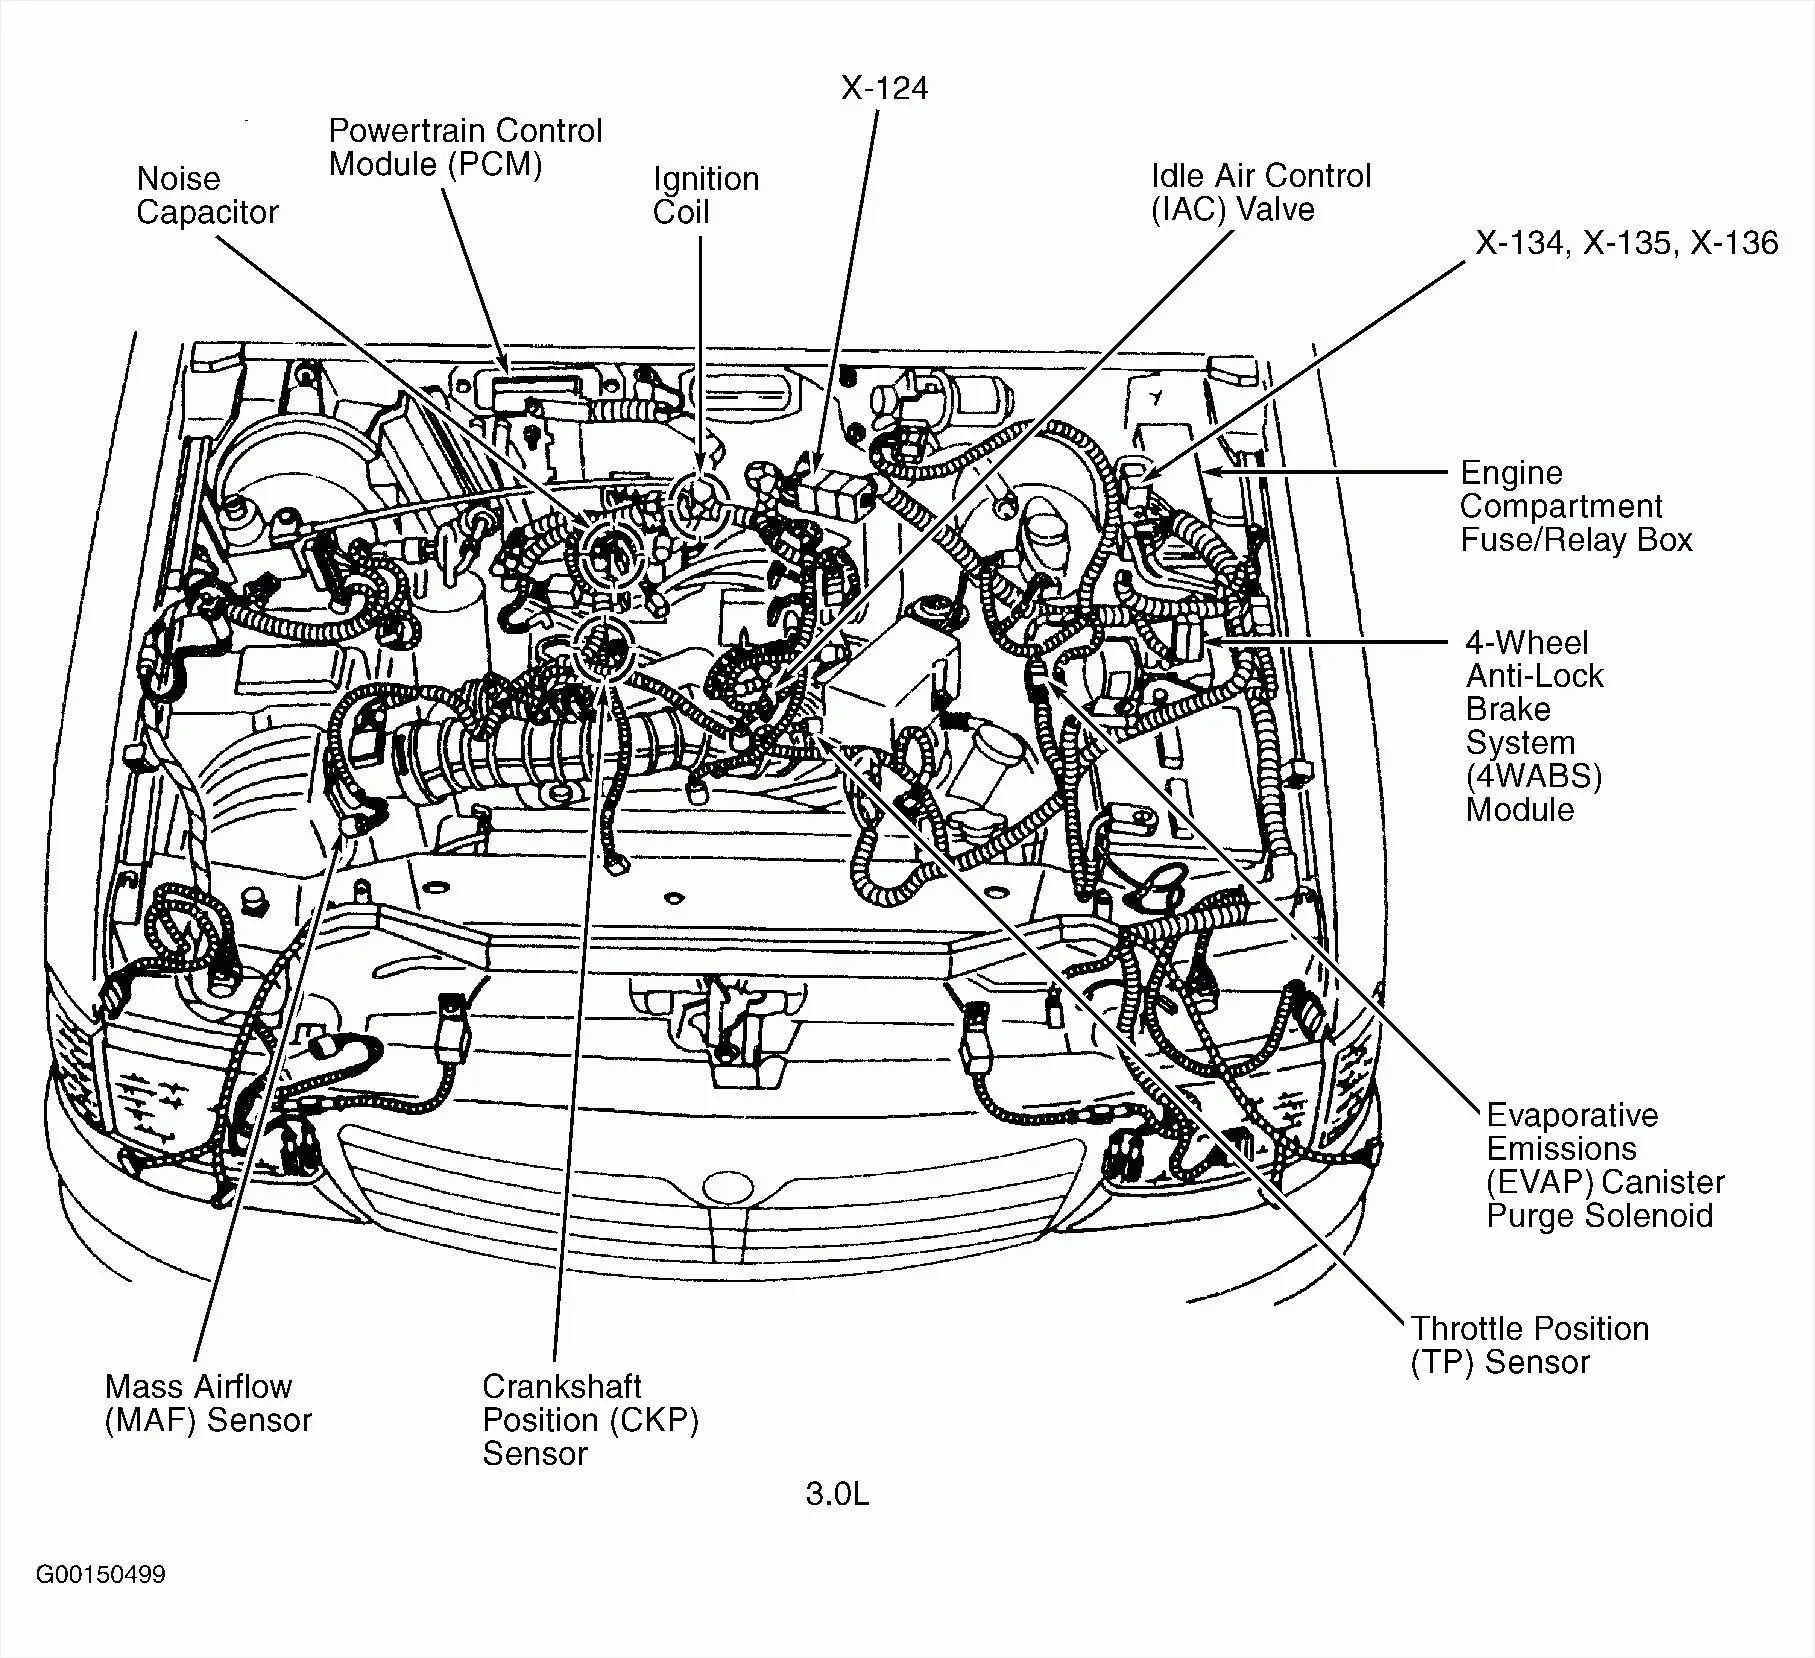 hight resolution of 2006 mazda 5 engine diagram wiring diagram datasource mazda 3 engine diagram mazda engine diagram